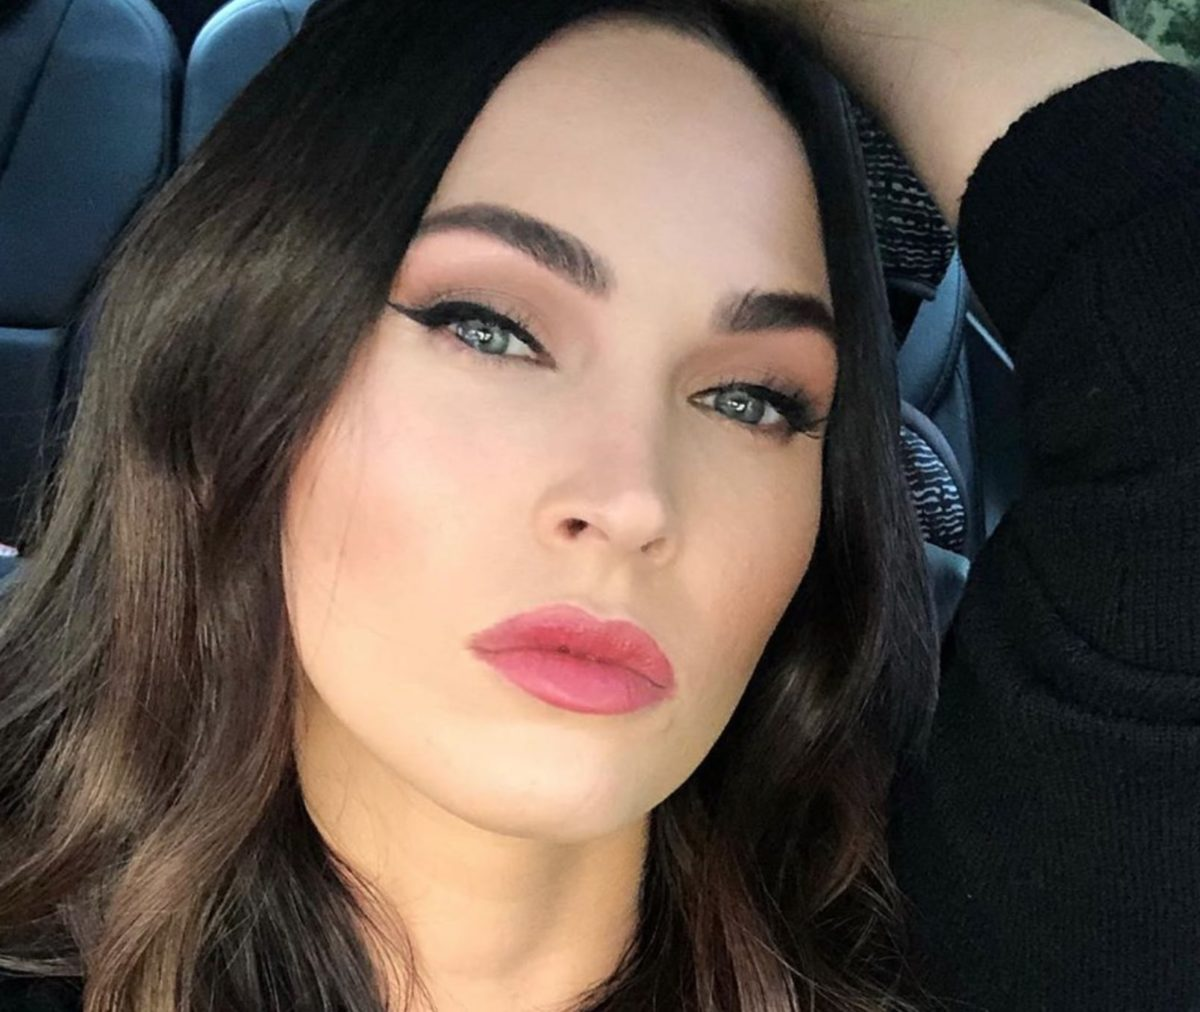 Megan Fox Goes Viral For Past Misogynistic Experiences